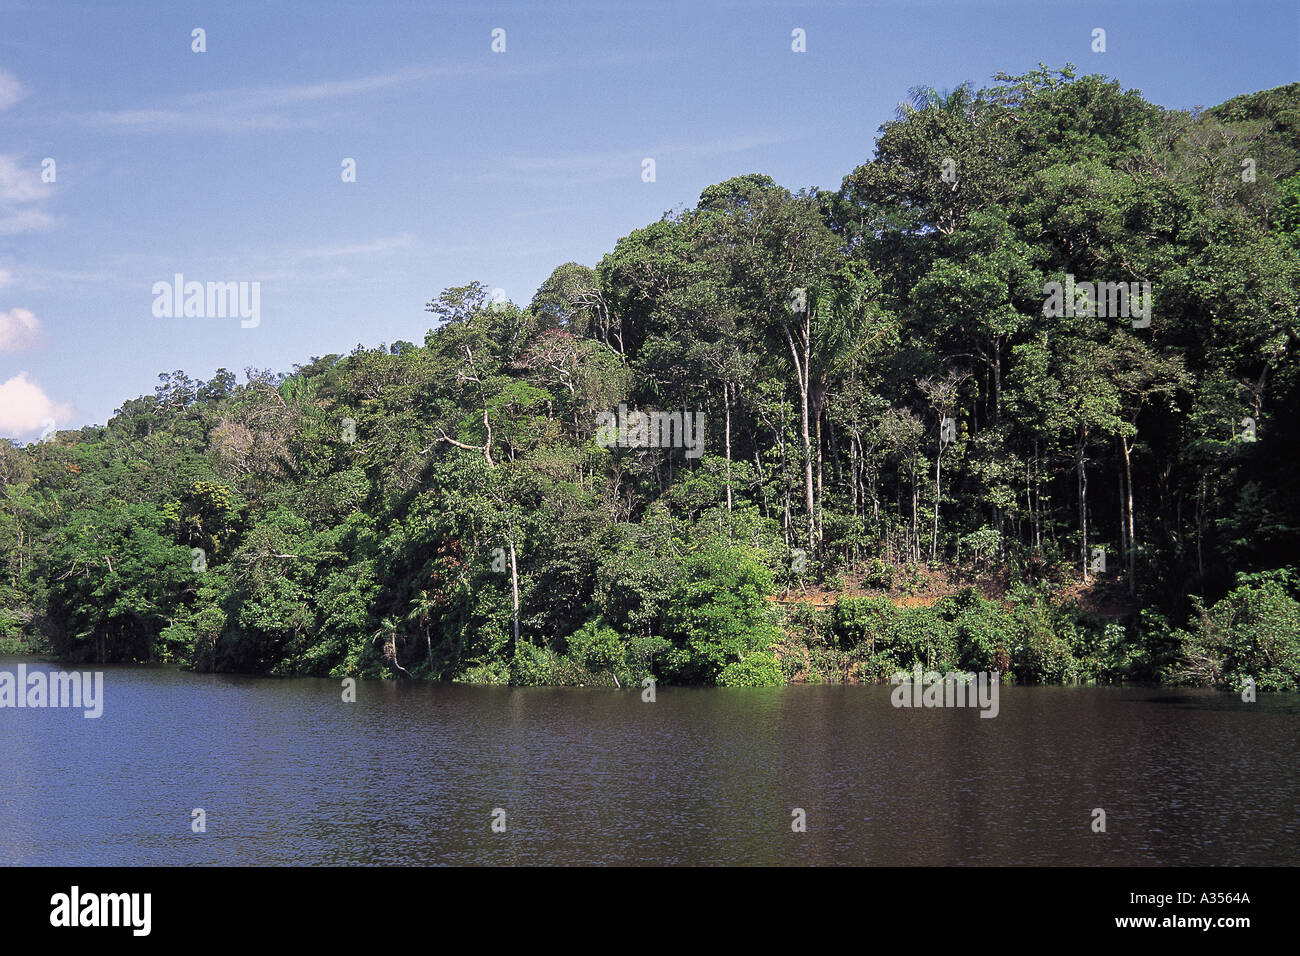 vegetation in the tropical rainforest 2018-06-12 the tropical rainforest biome is an ecosystem that covers about 7% of the earth's surface they are found all over the world but the majority of the tropical rainforest lies in south america in brazil the weather in the.